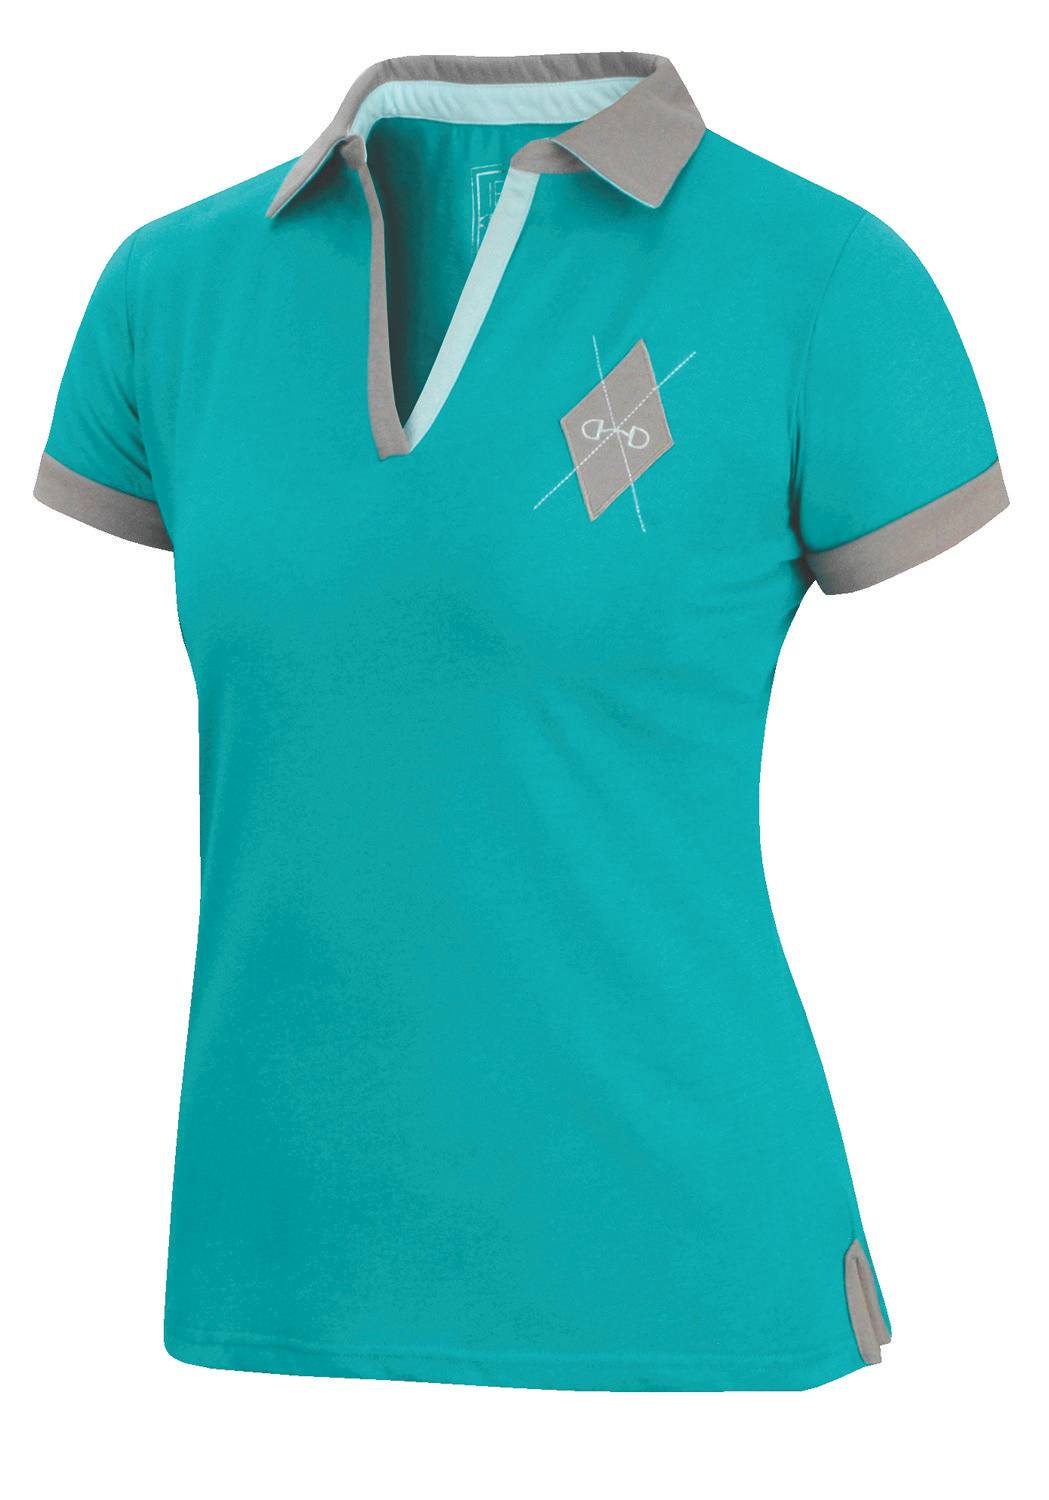 Irideon Argyle Polo Shirt- Kids